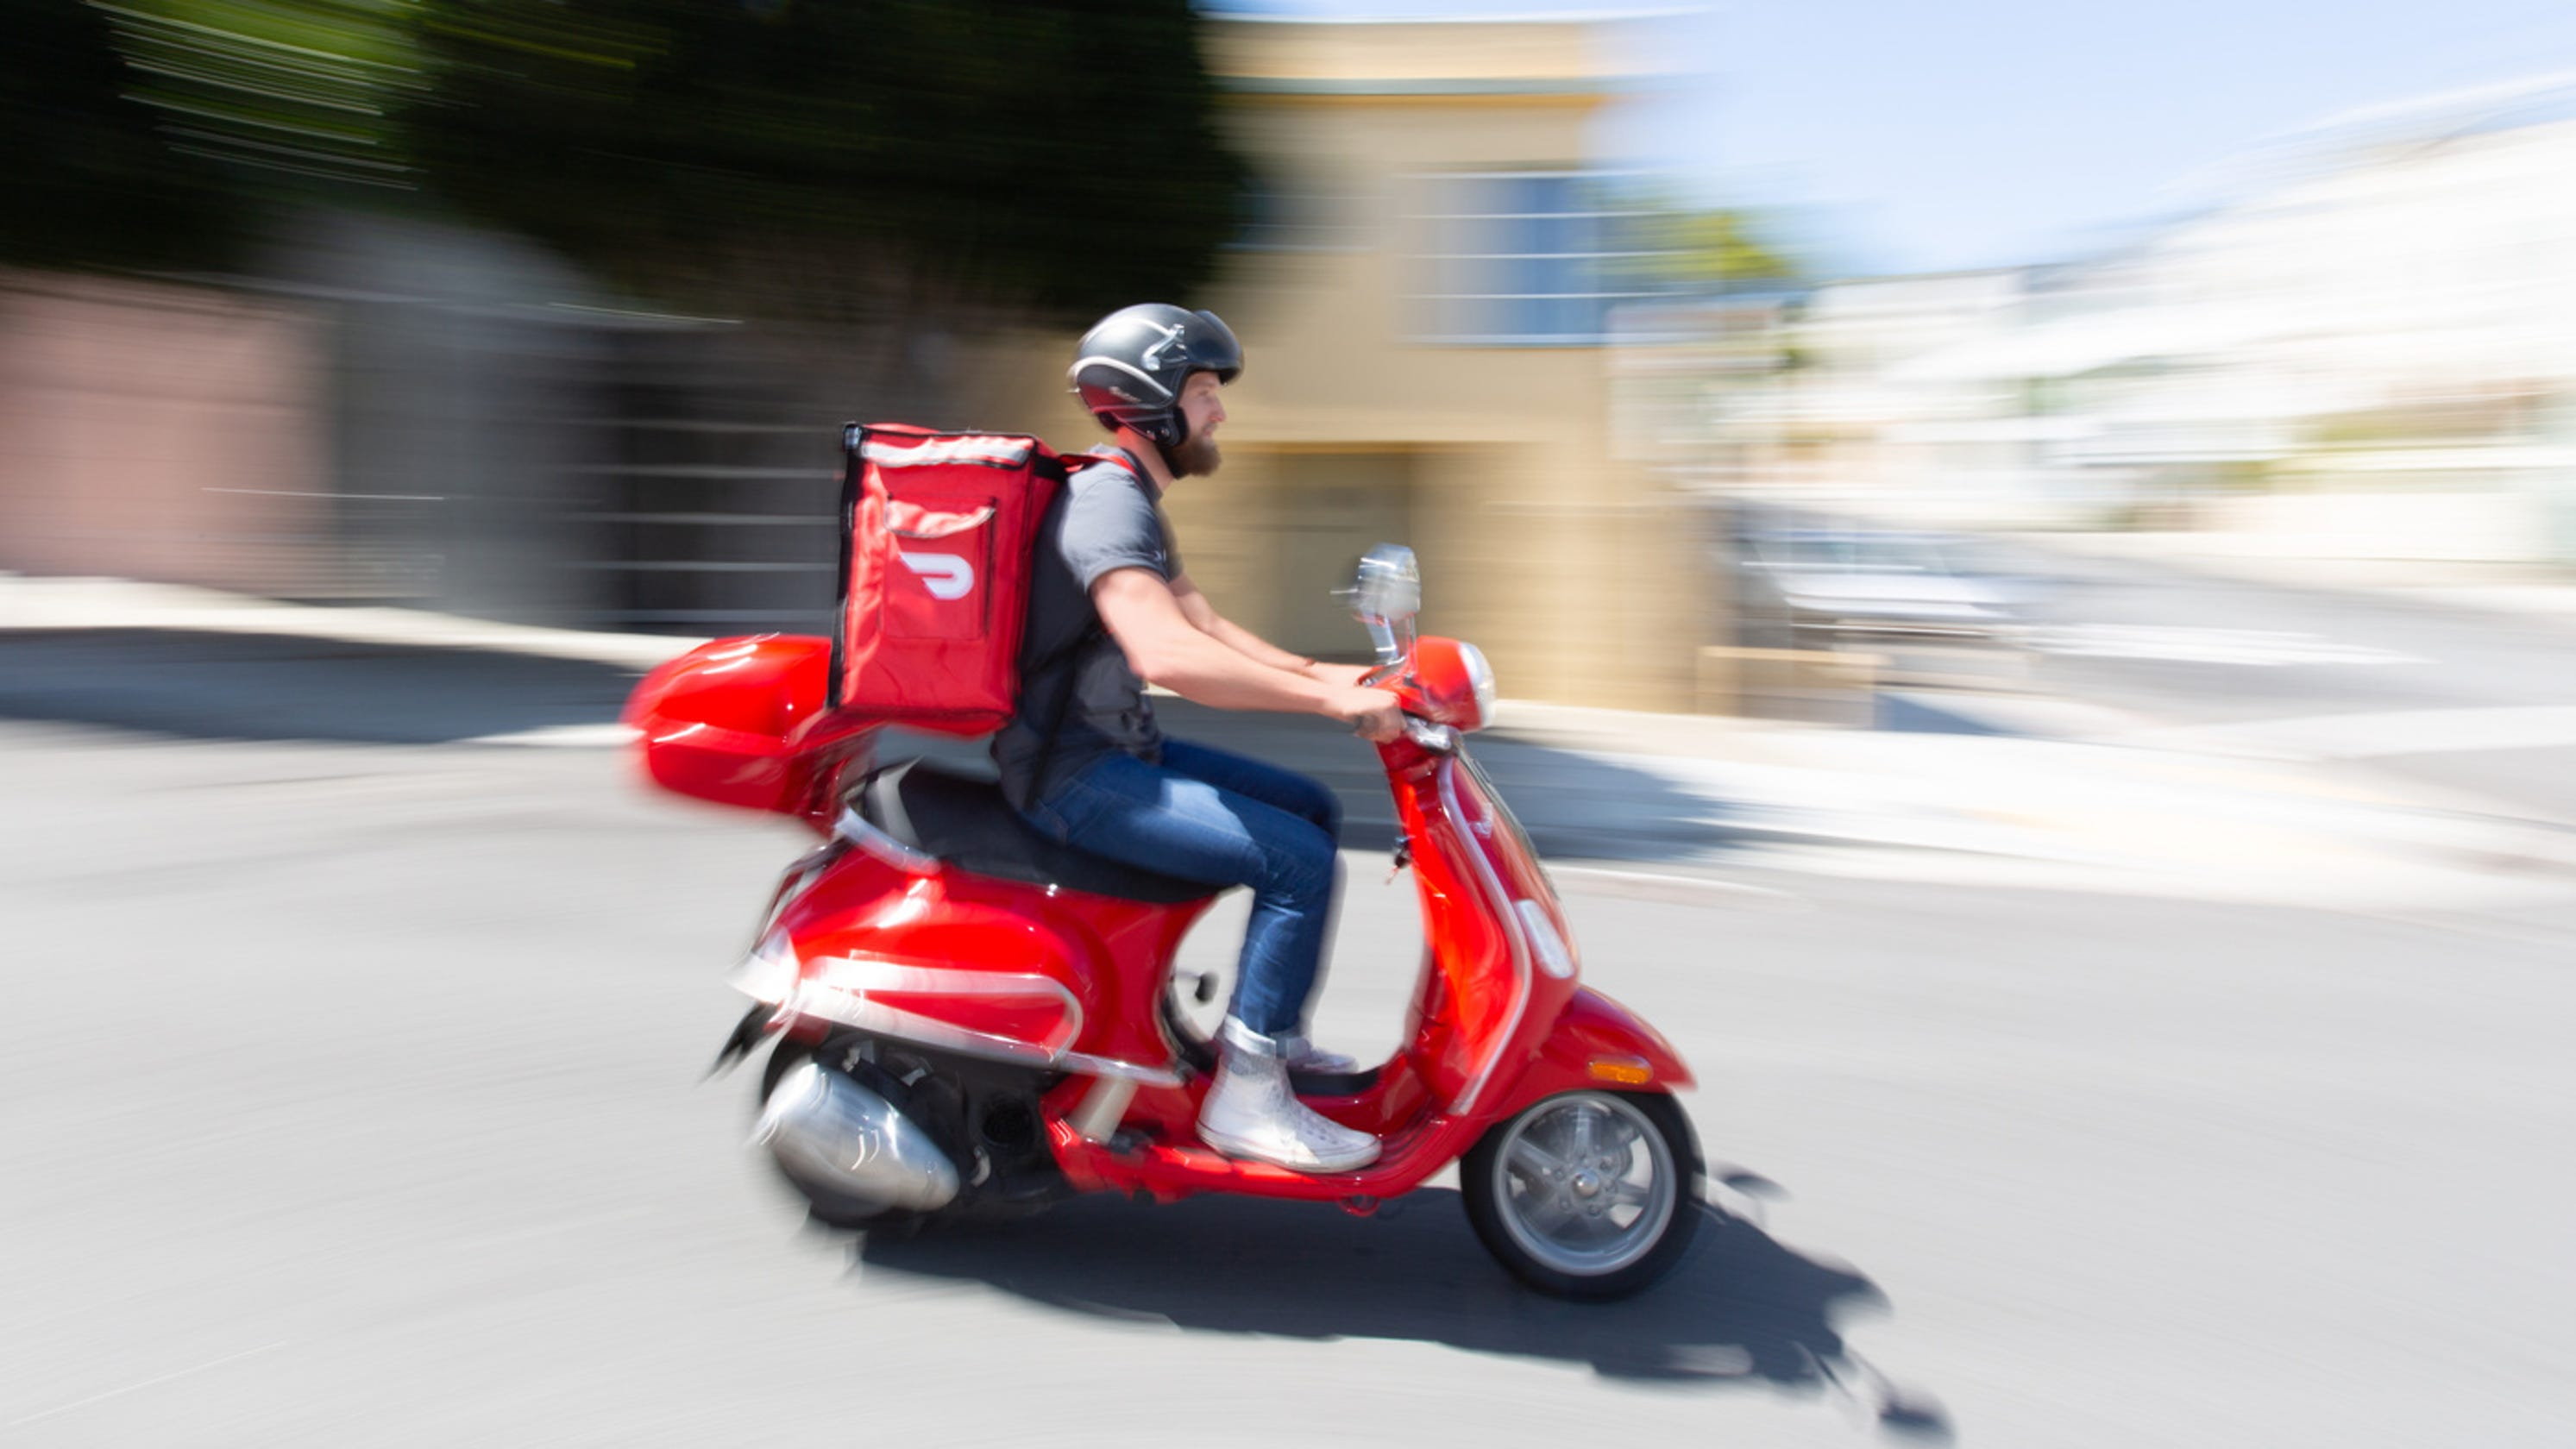 DoorDash, a local food delivery service, leaves bad taste with eateries